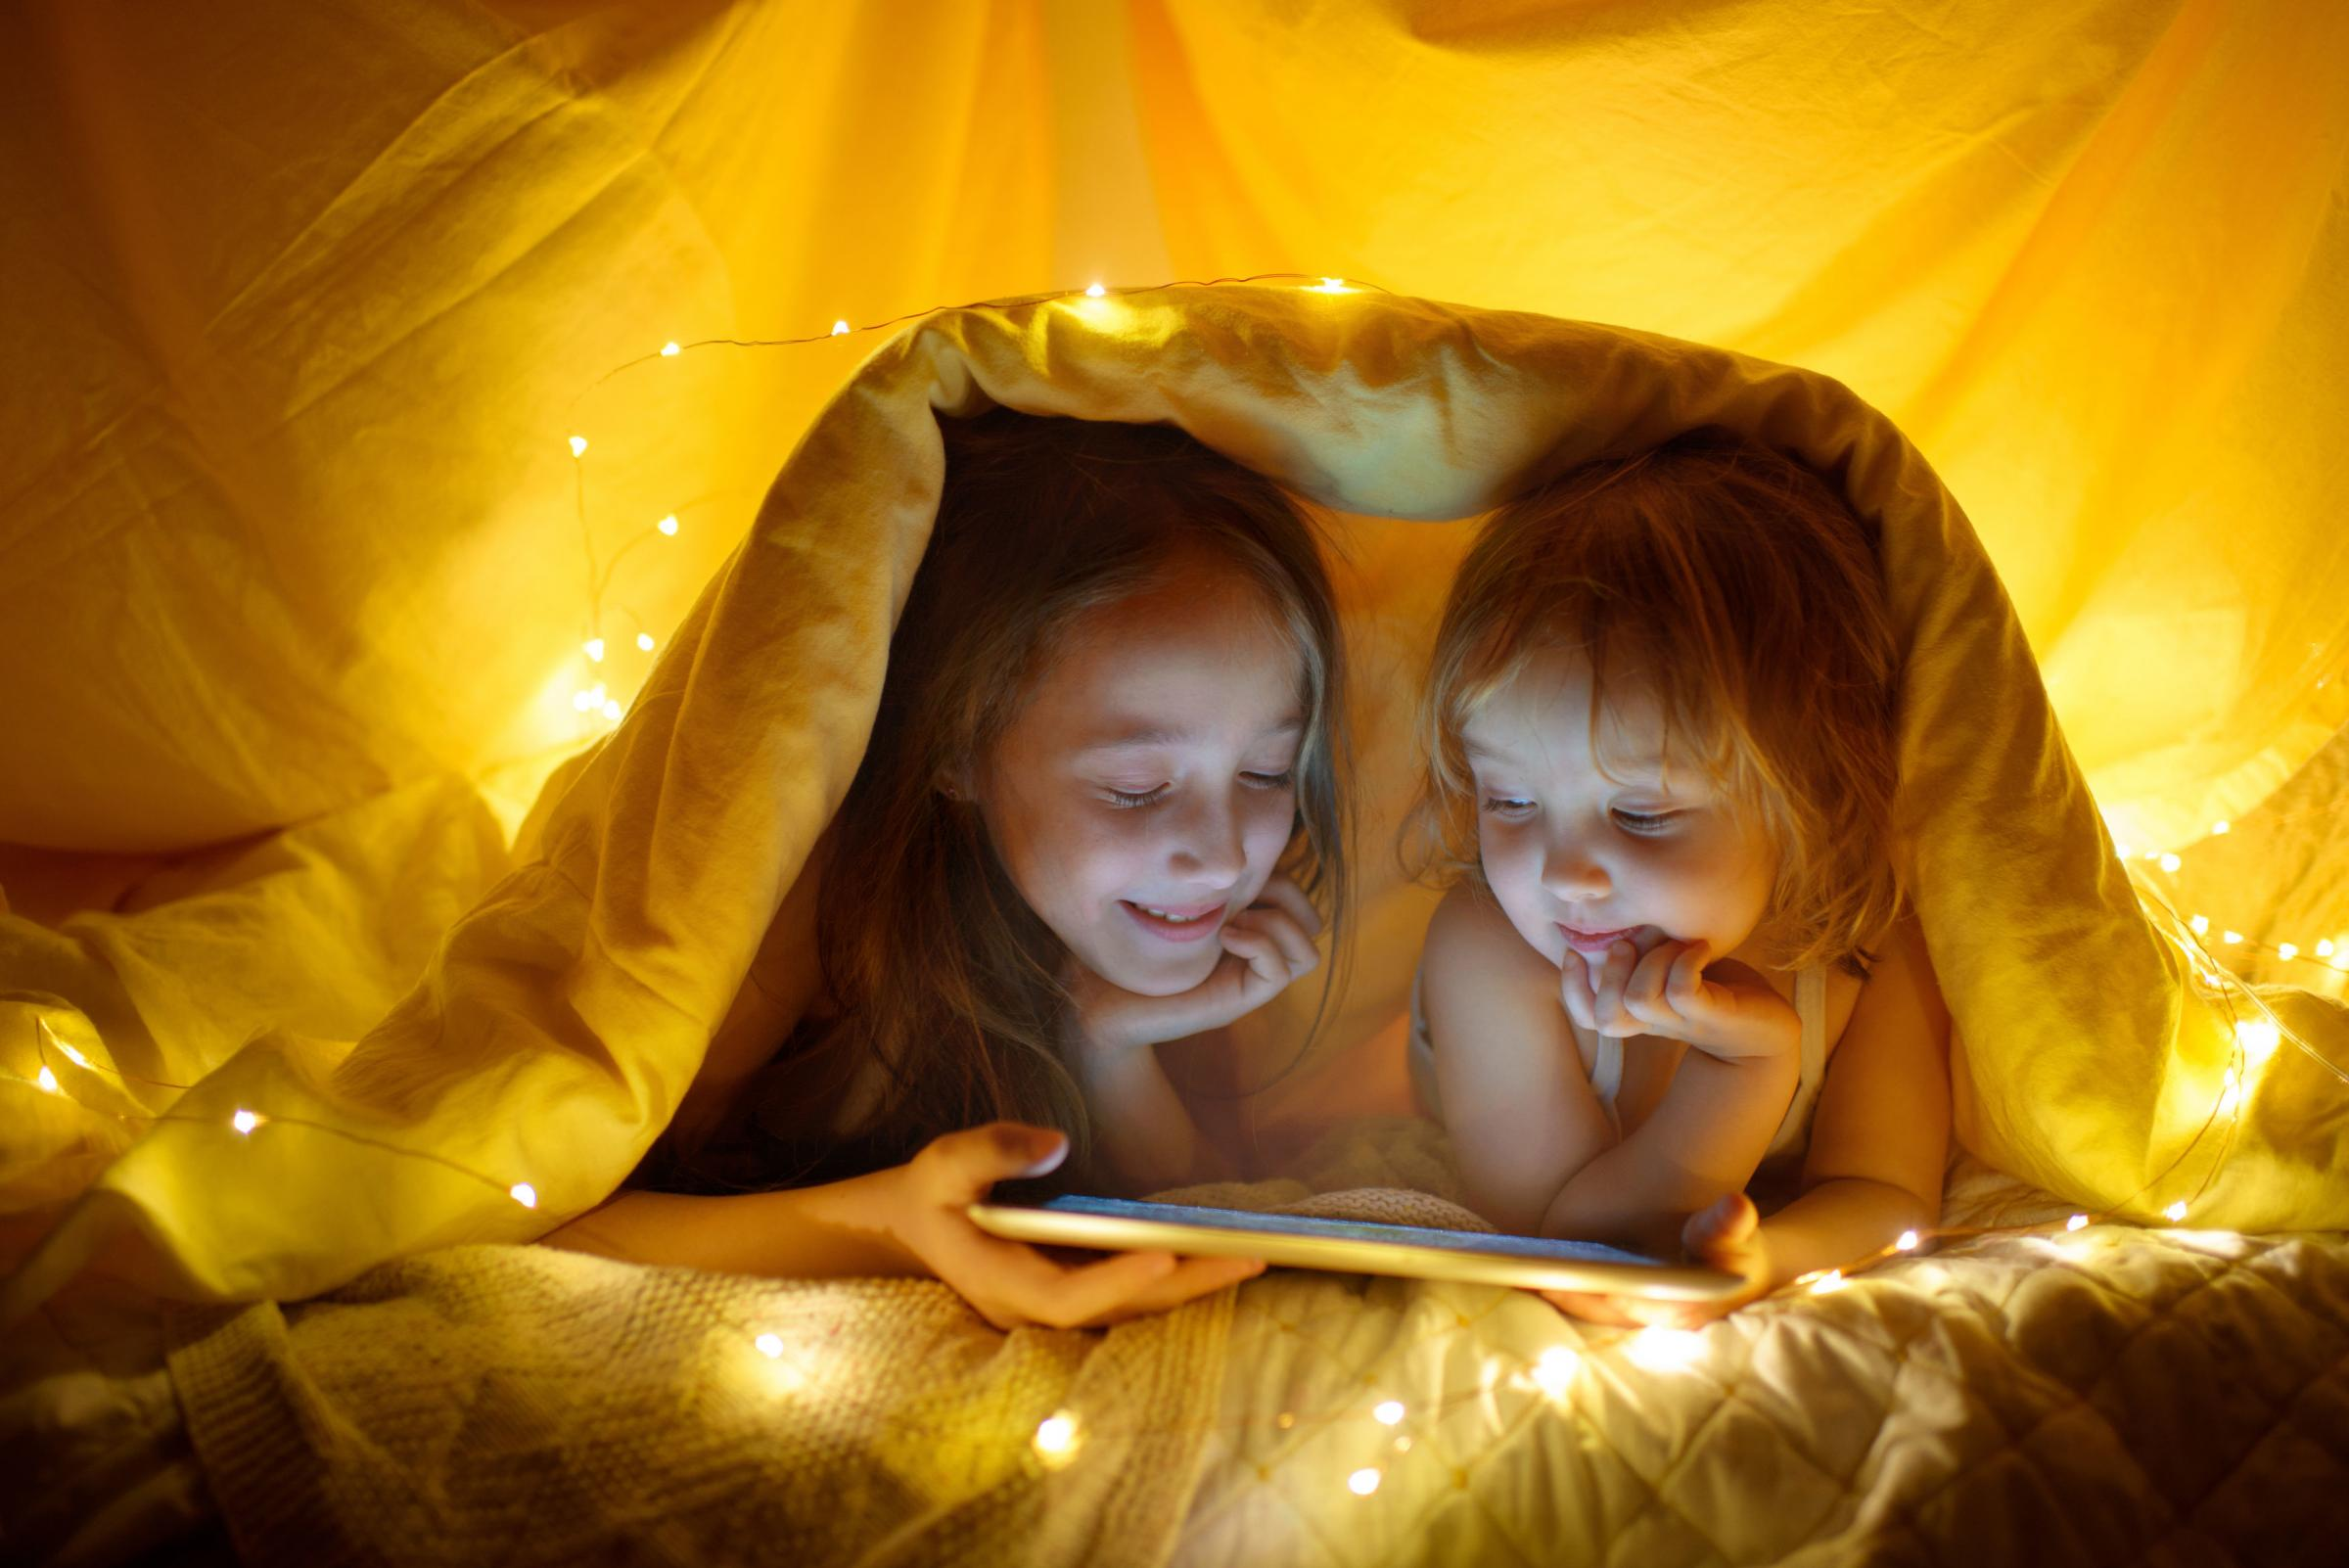 Time for bed - 10 ways to help your child get a good night's sleep